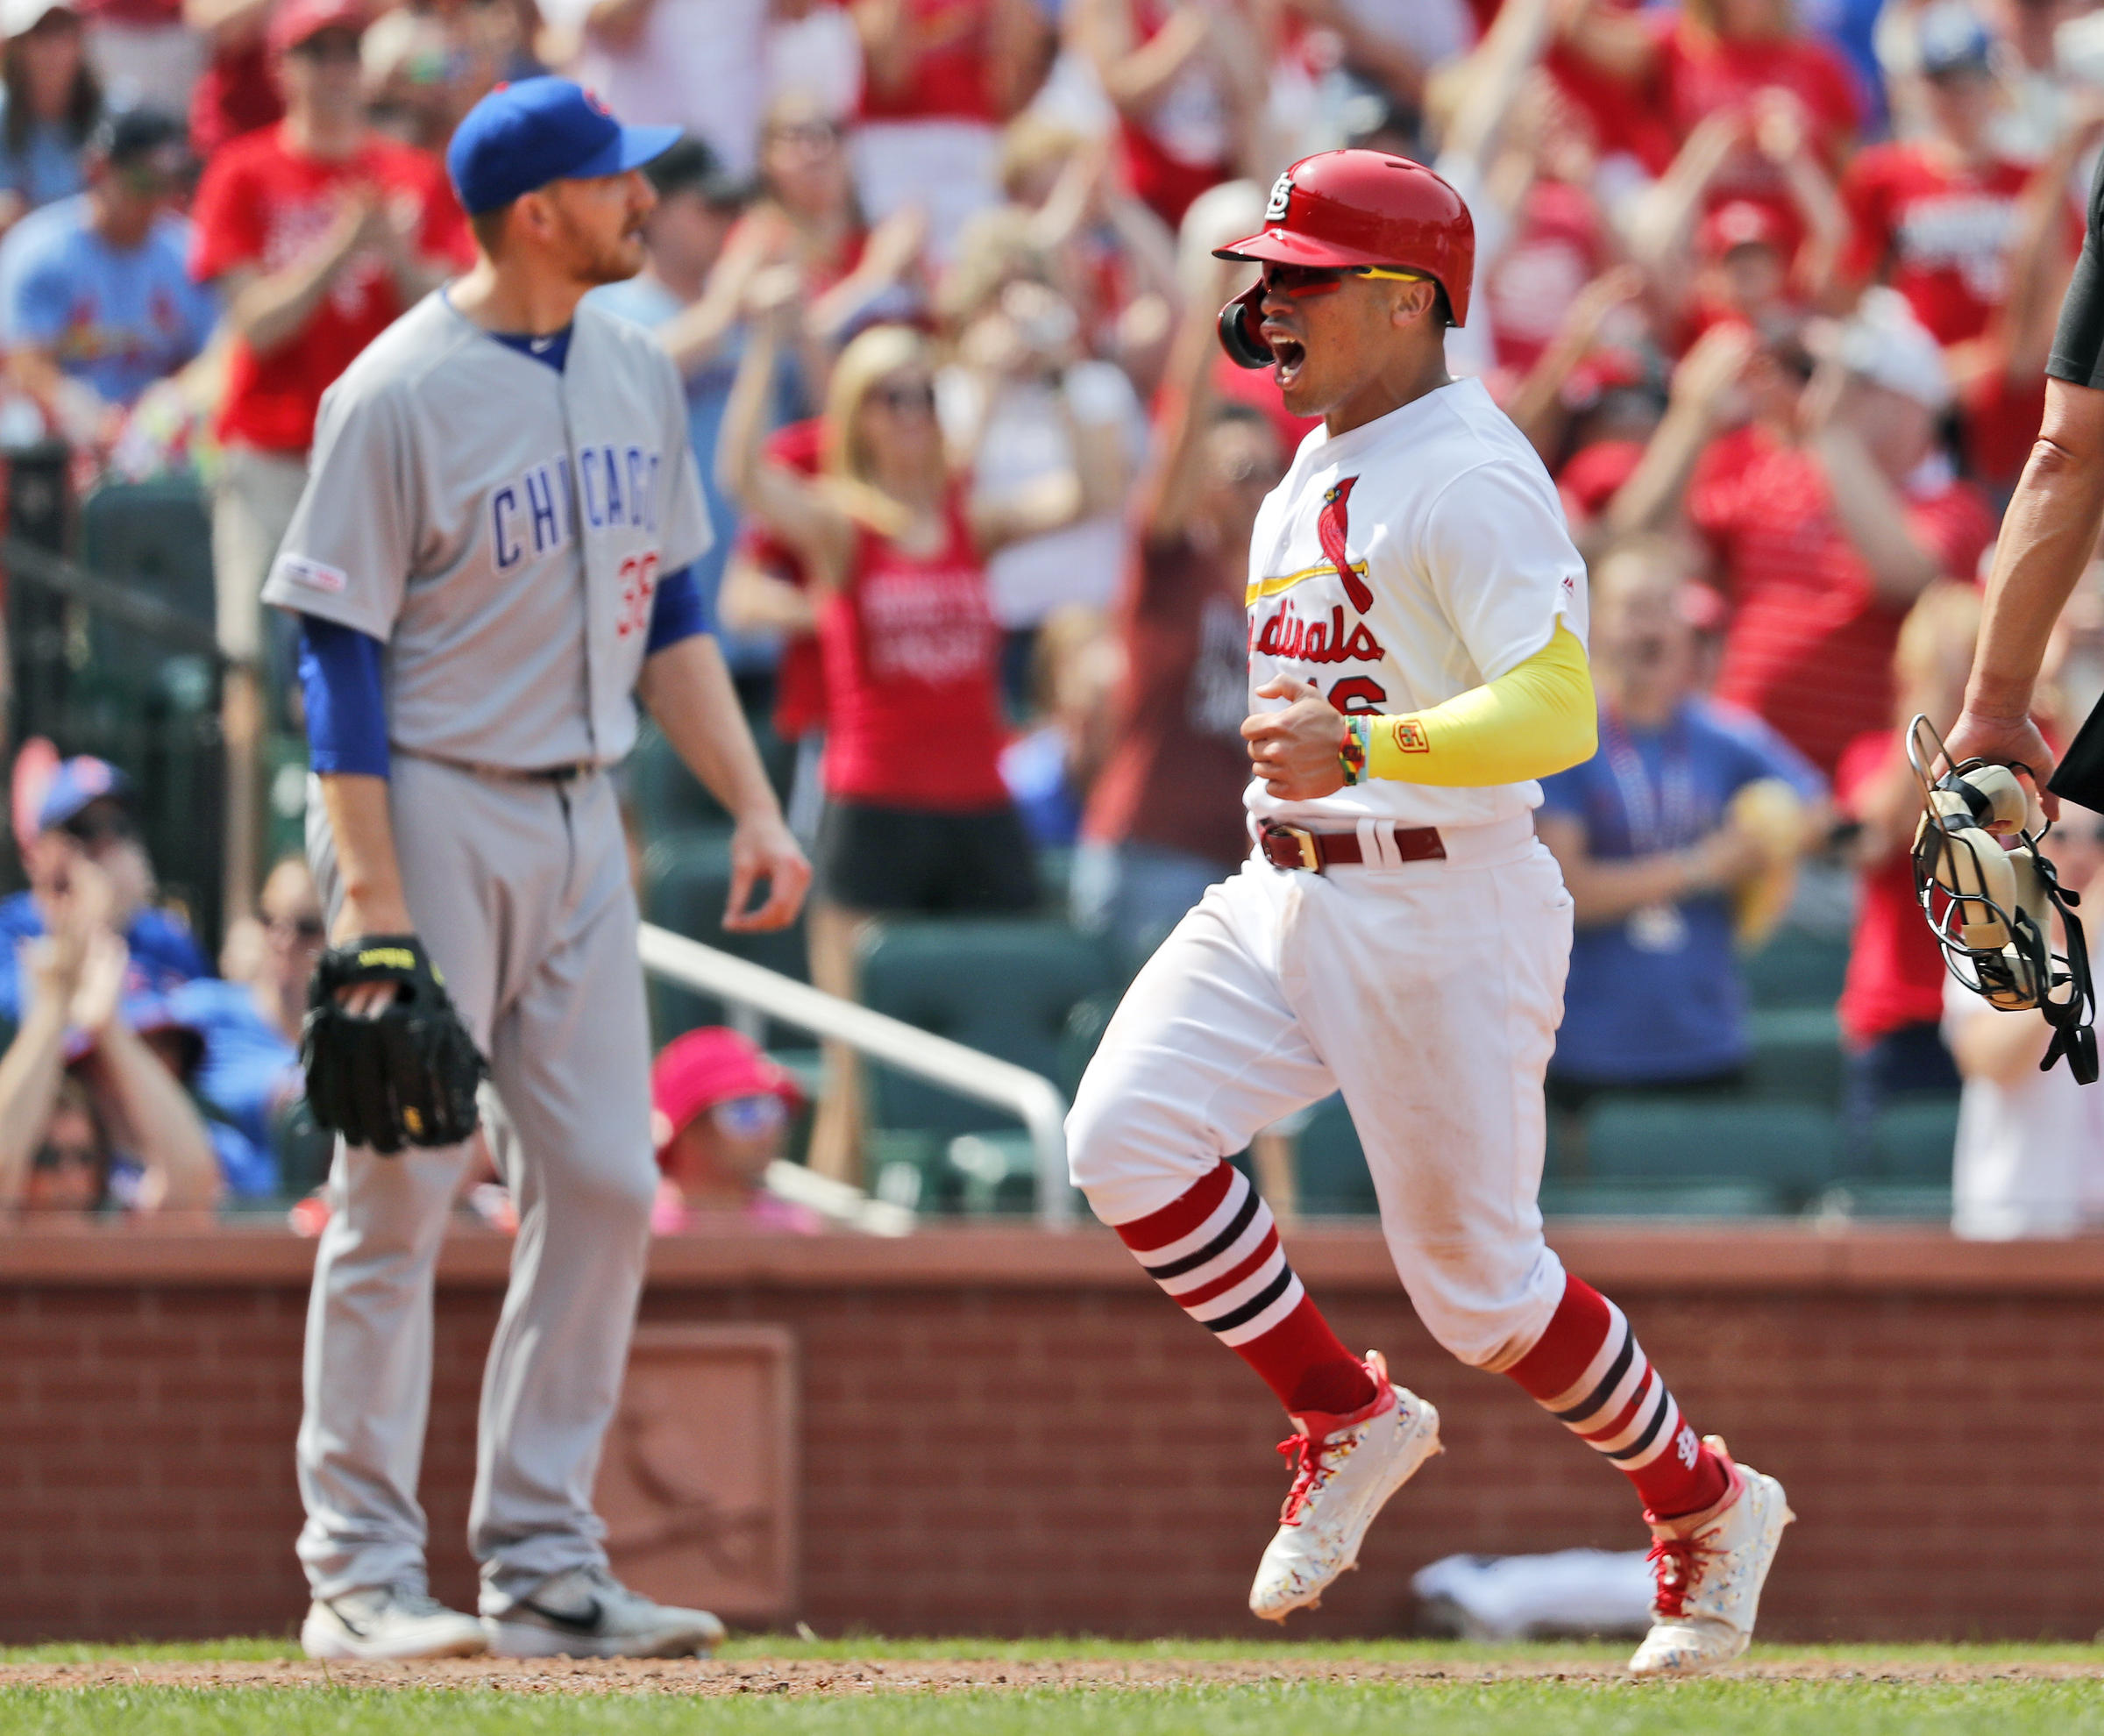 Best Relief Pitchers 2020 Cubs Cards to play in London on June 13 14, 2020   Peoria Public Radio